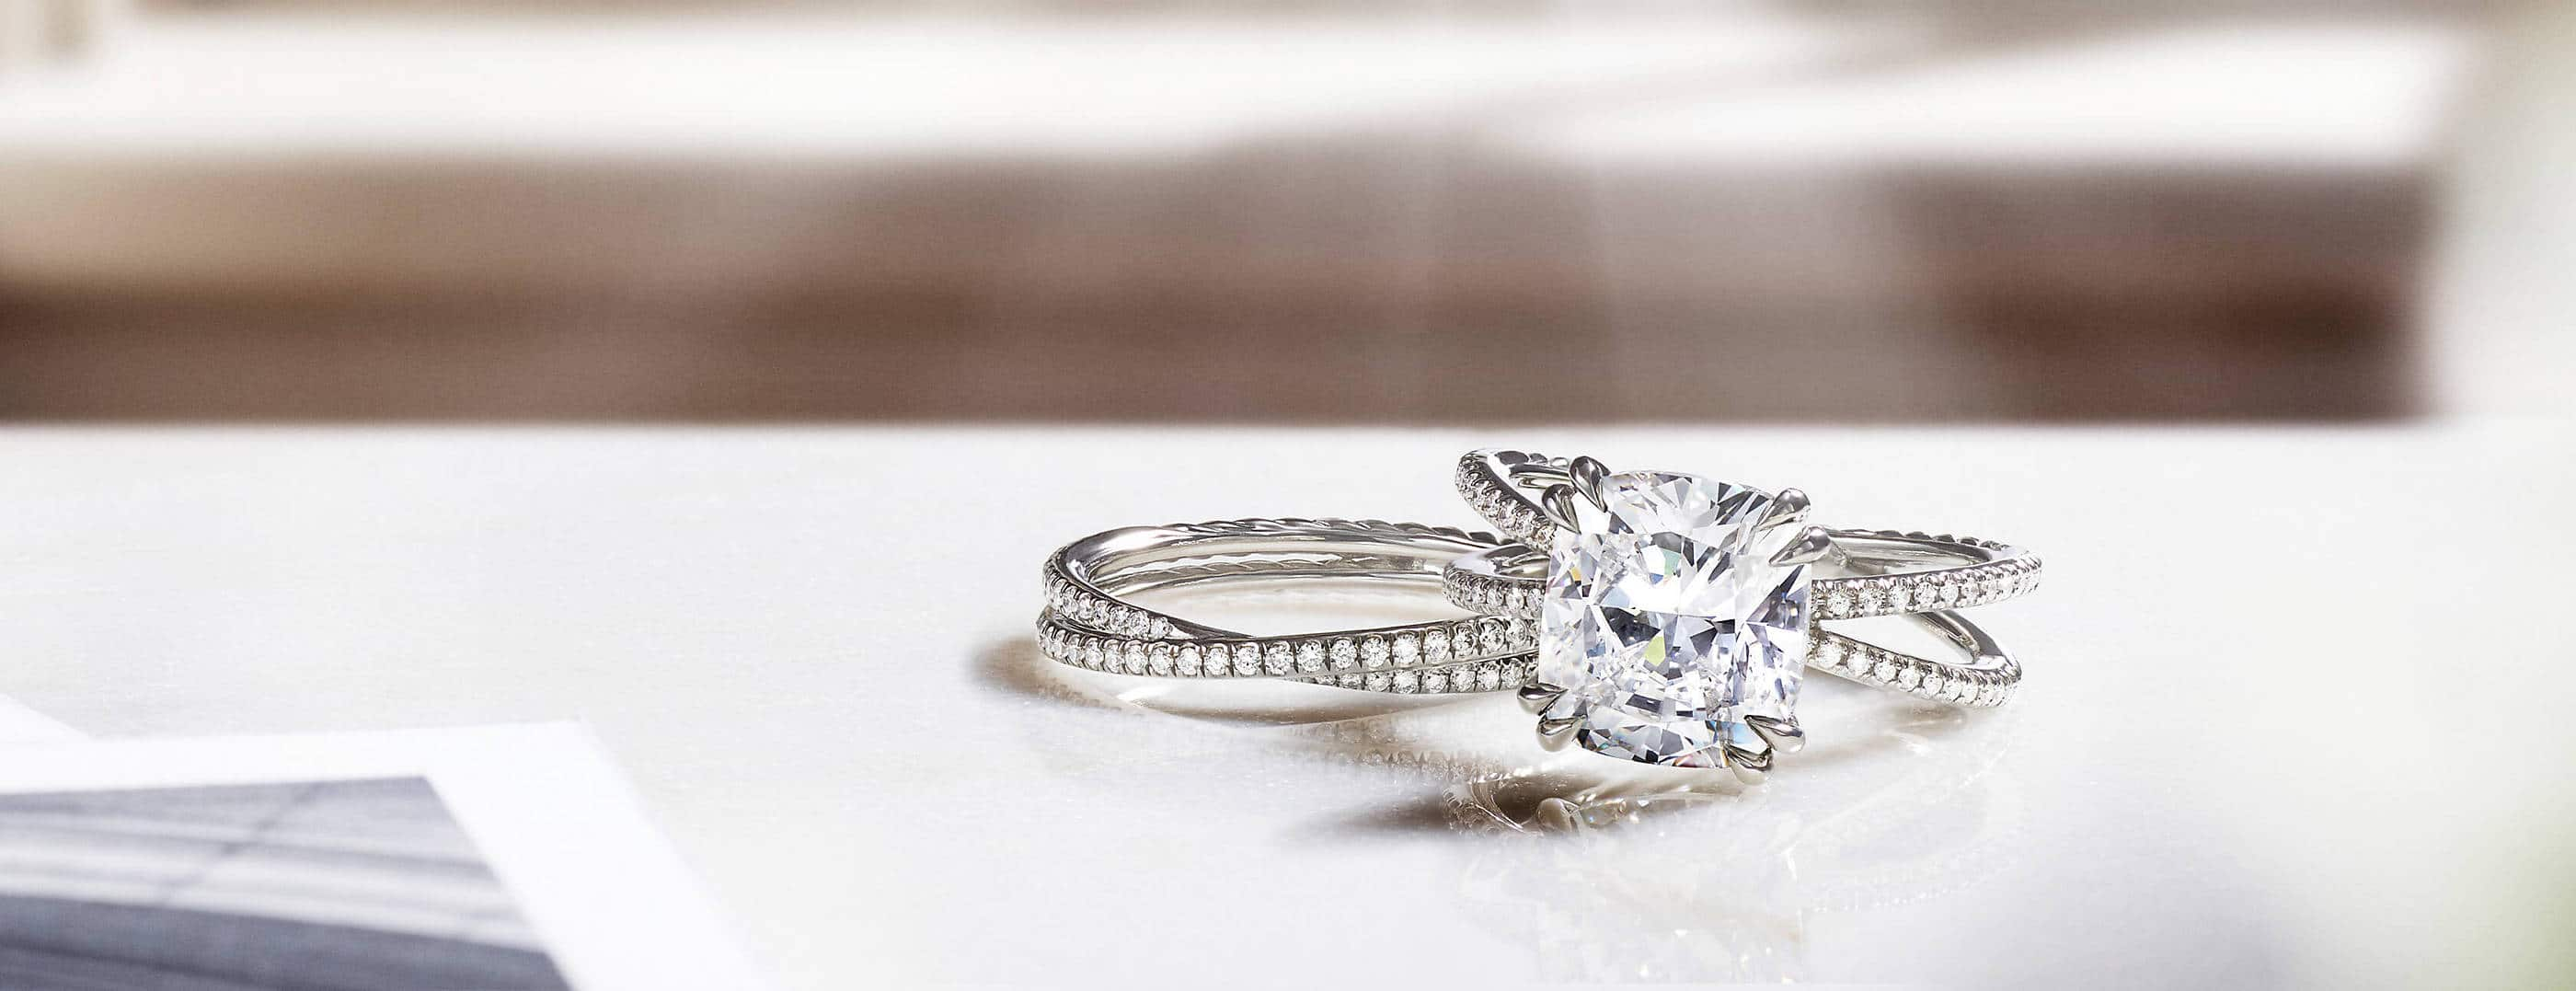 A color photo shows a David Yurman women's Crossover engagement ring atop a matching band ring on a white table near scattered black-and-white photographs. The jewelry is crafted from platinum with diamonds. Behind the rings is a white windowsill with hard shadows